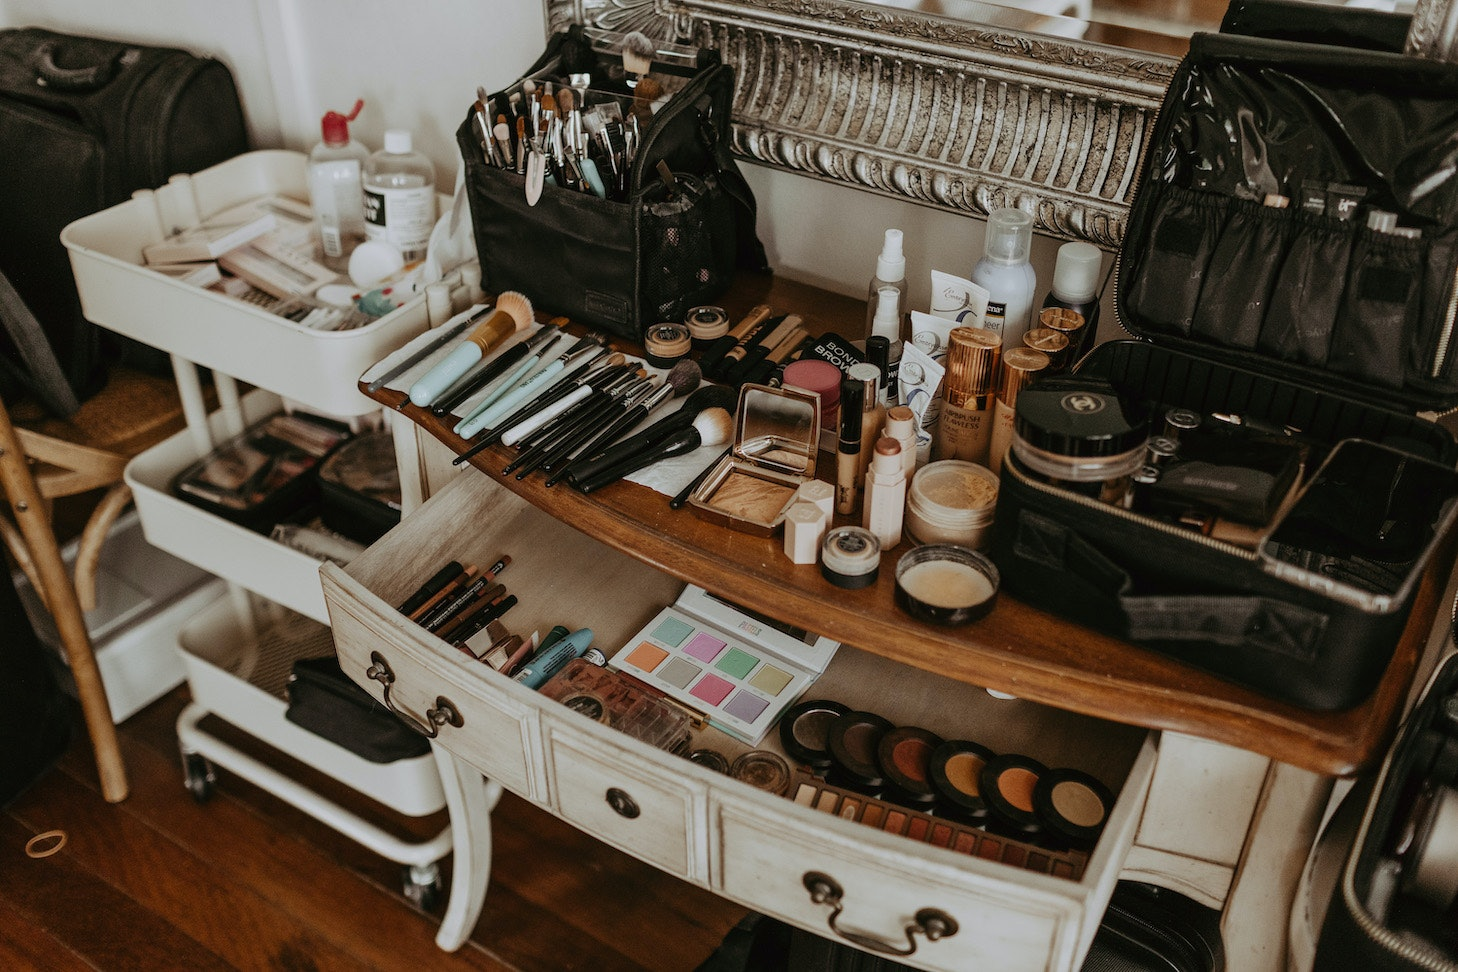 Console table covered with brushes, lipstick, and makeup